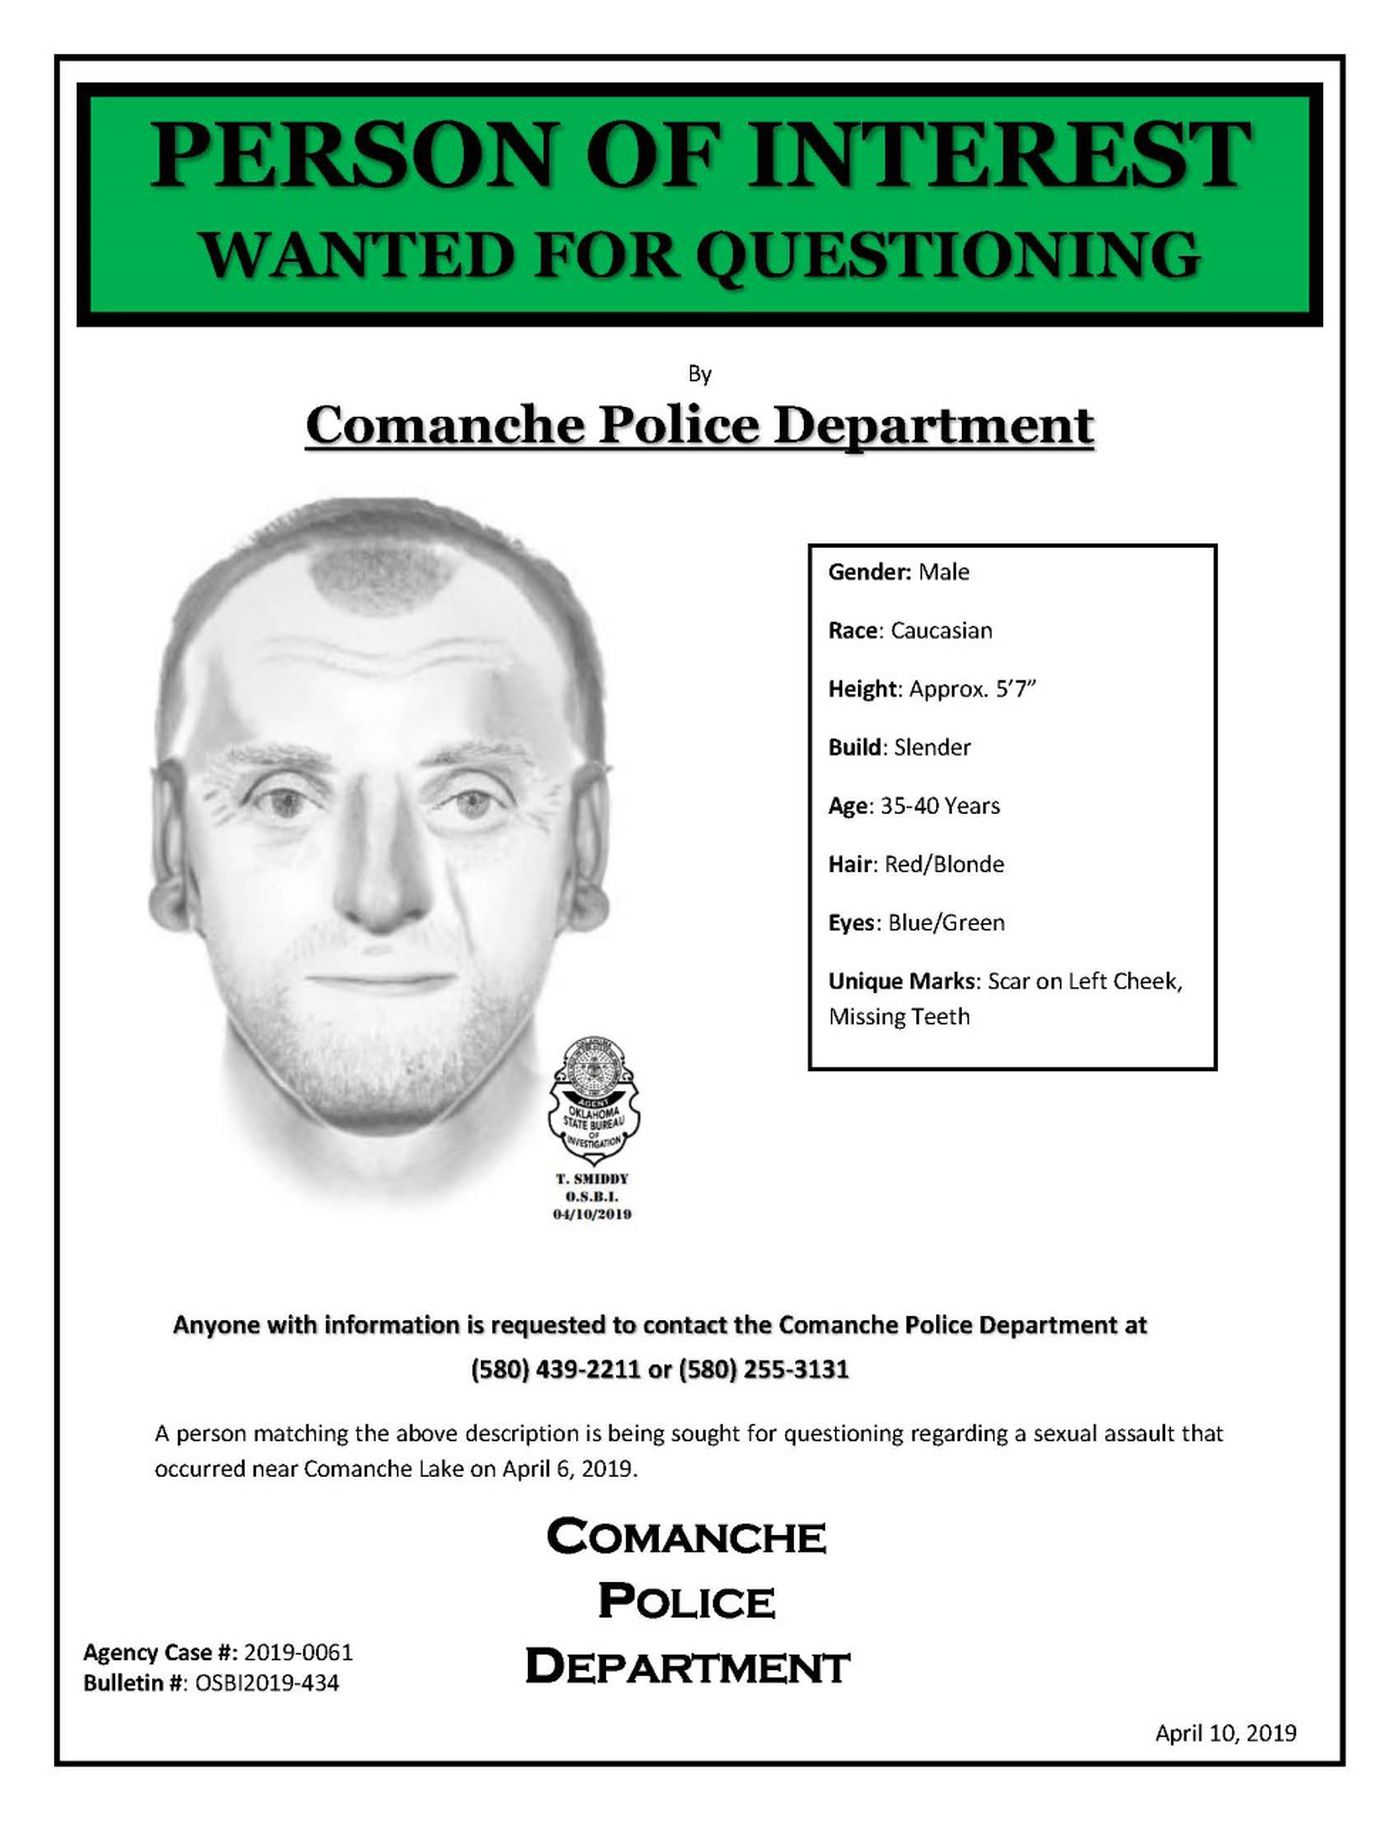 Sketch released of man who attacked a woman at Comanche Lake